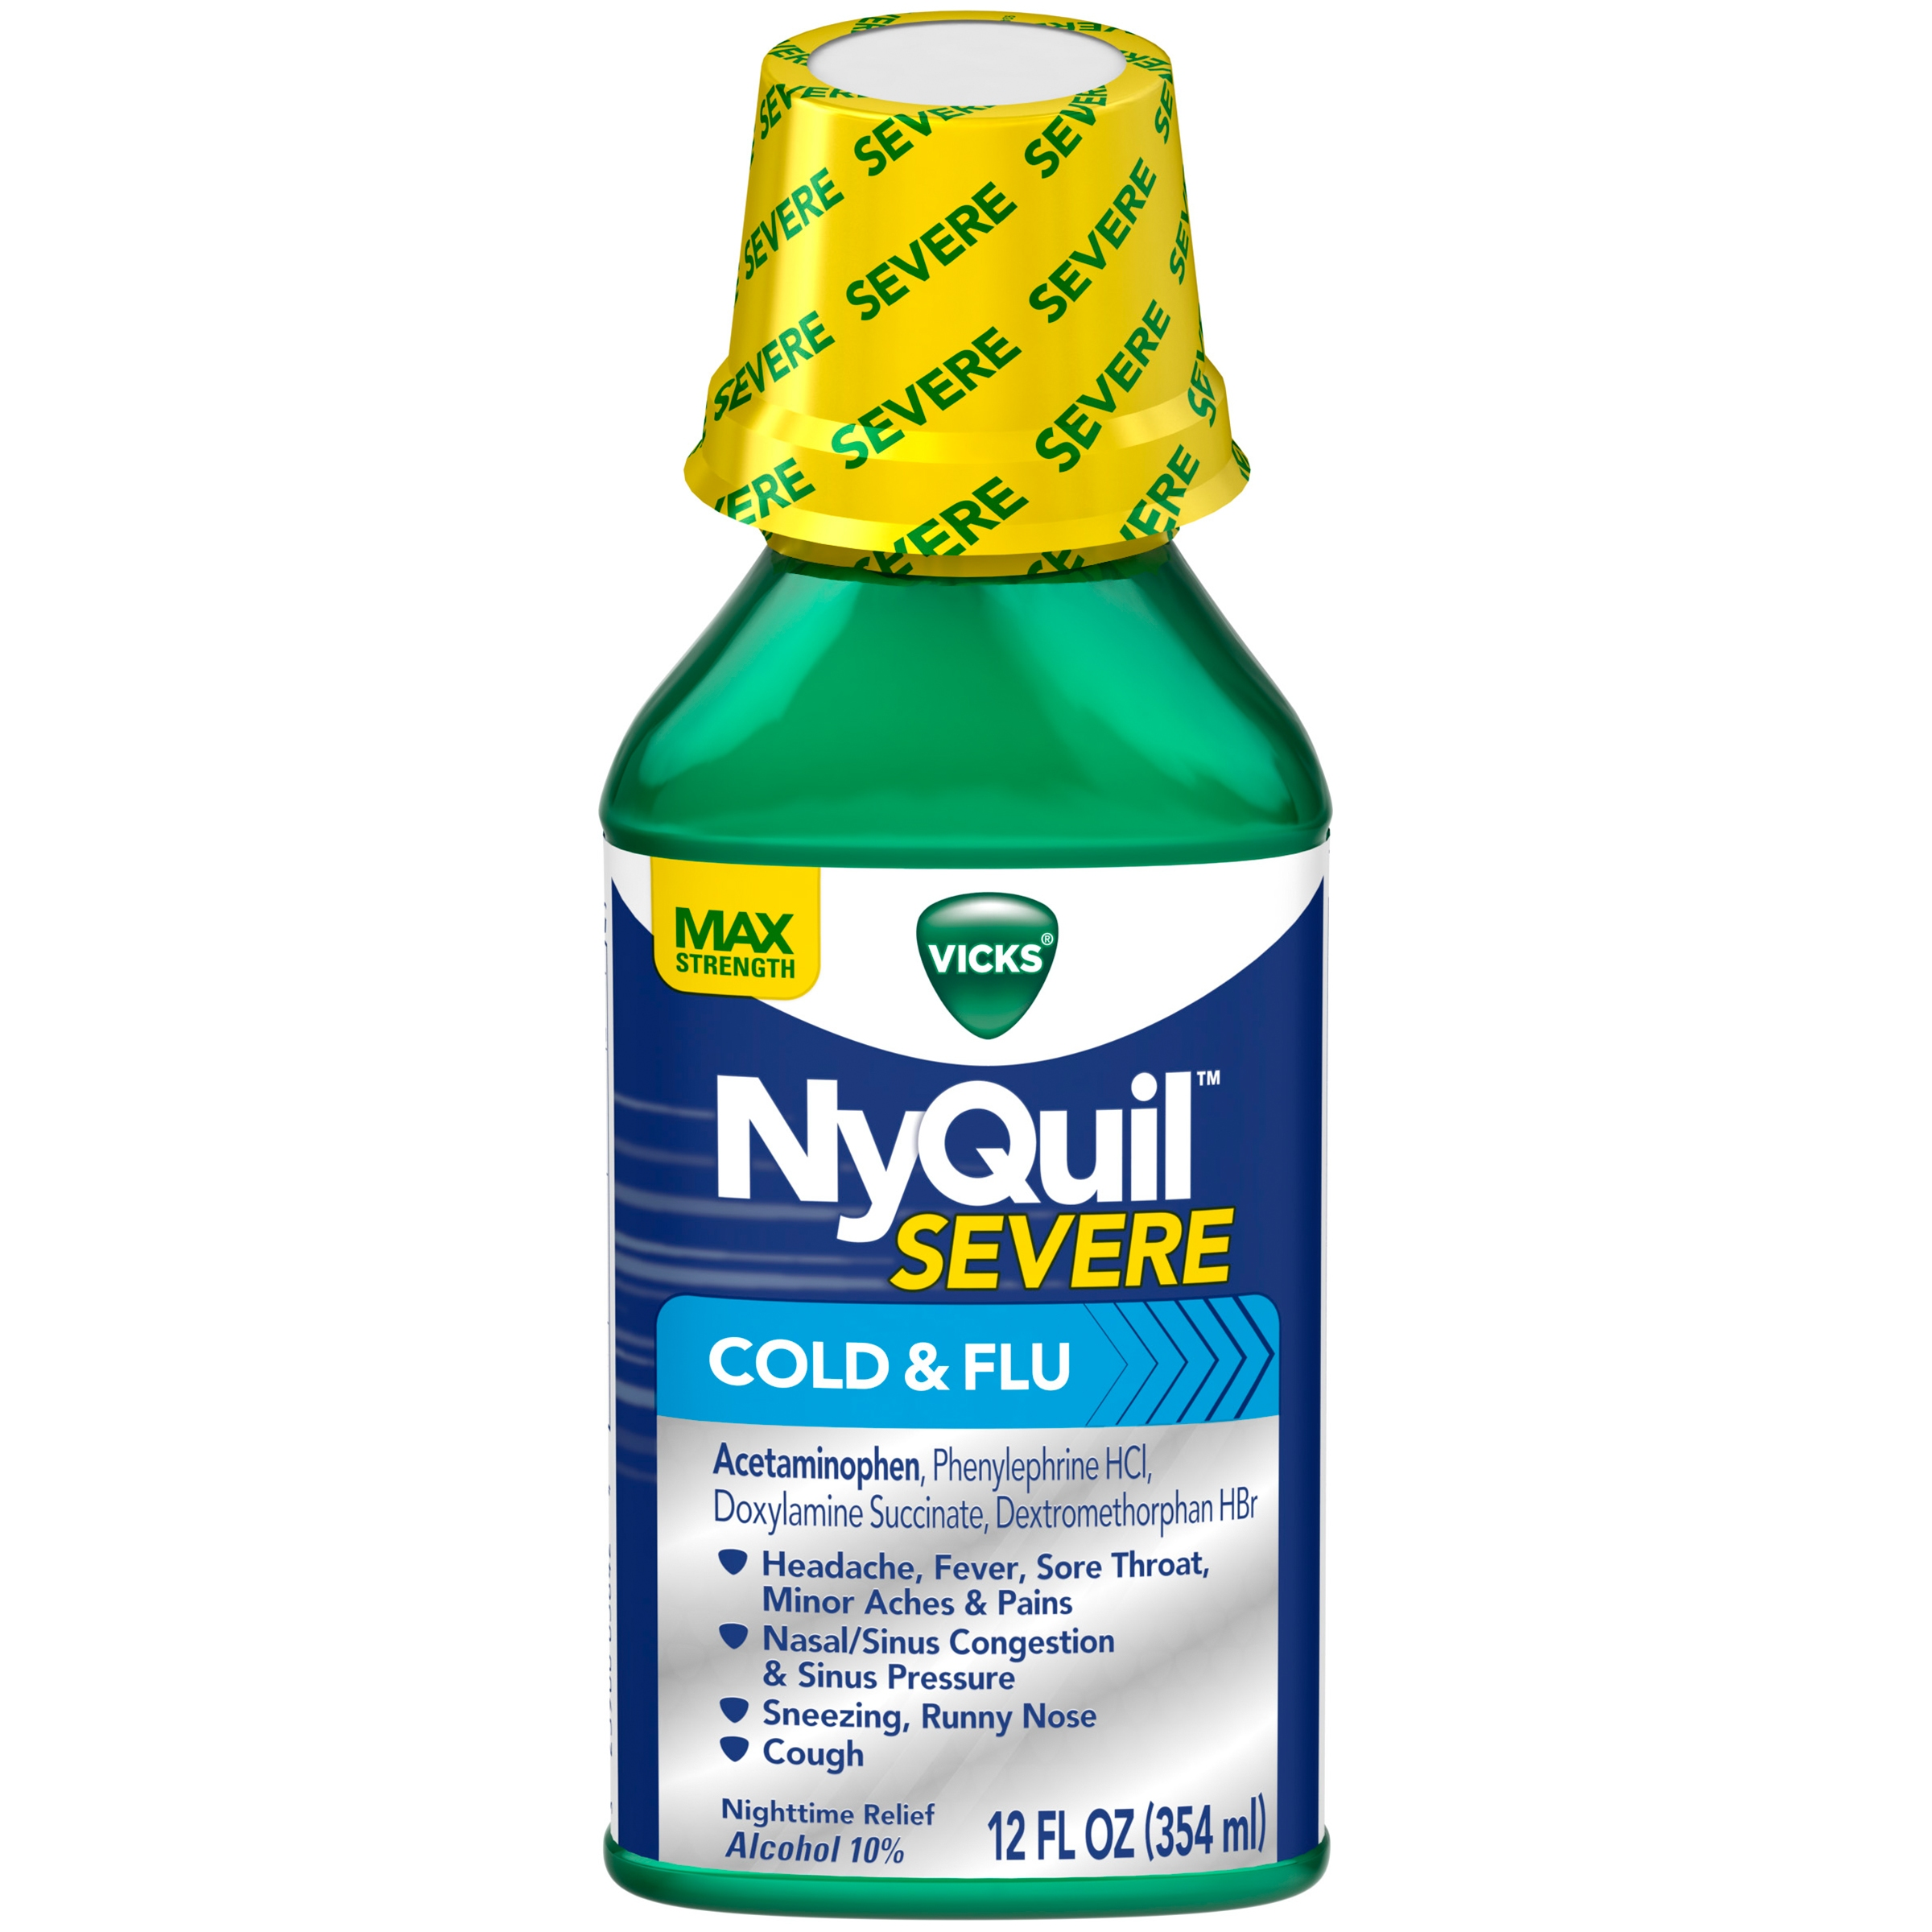 Get Rid Of Strong Coughs In Vicks� Nyquil� Severe Cold & Flu Nighttime  Relief